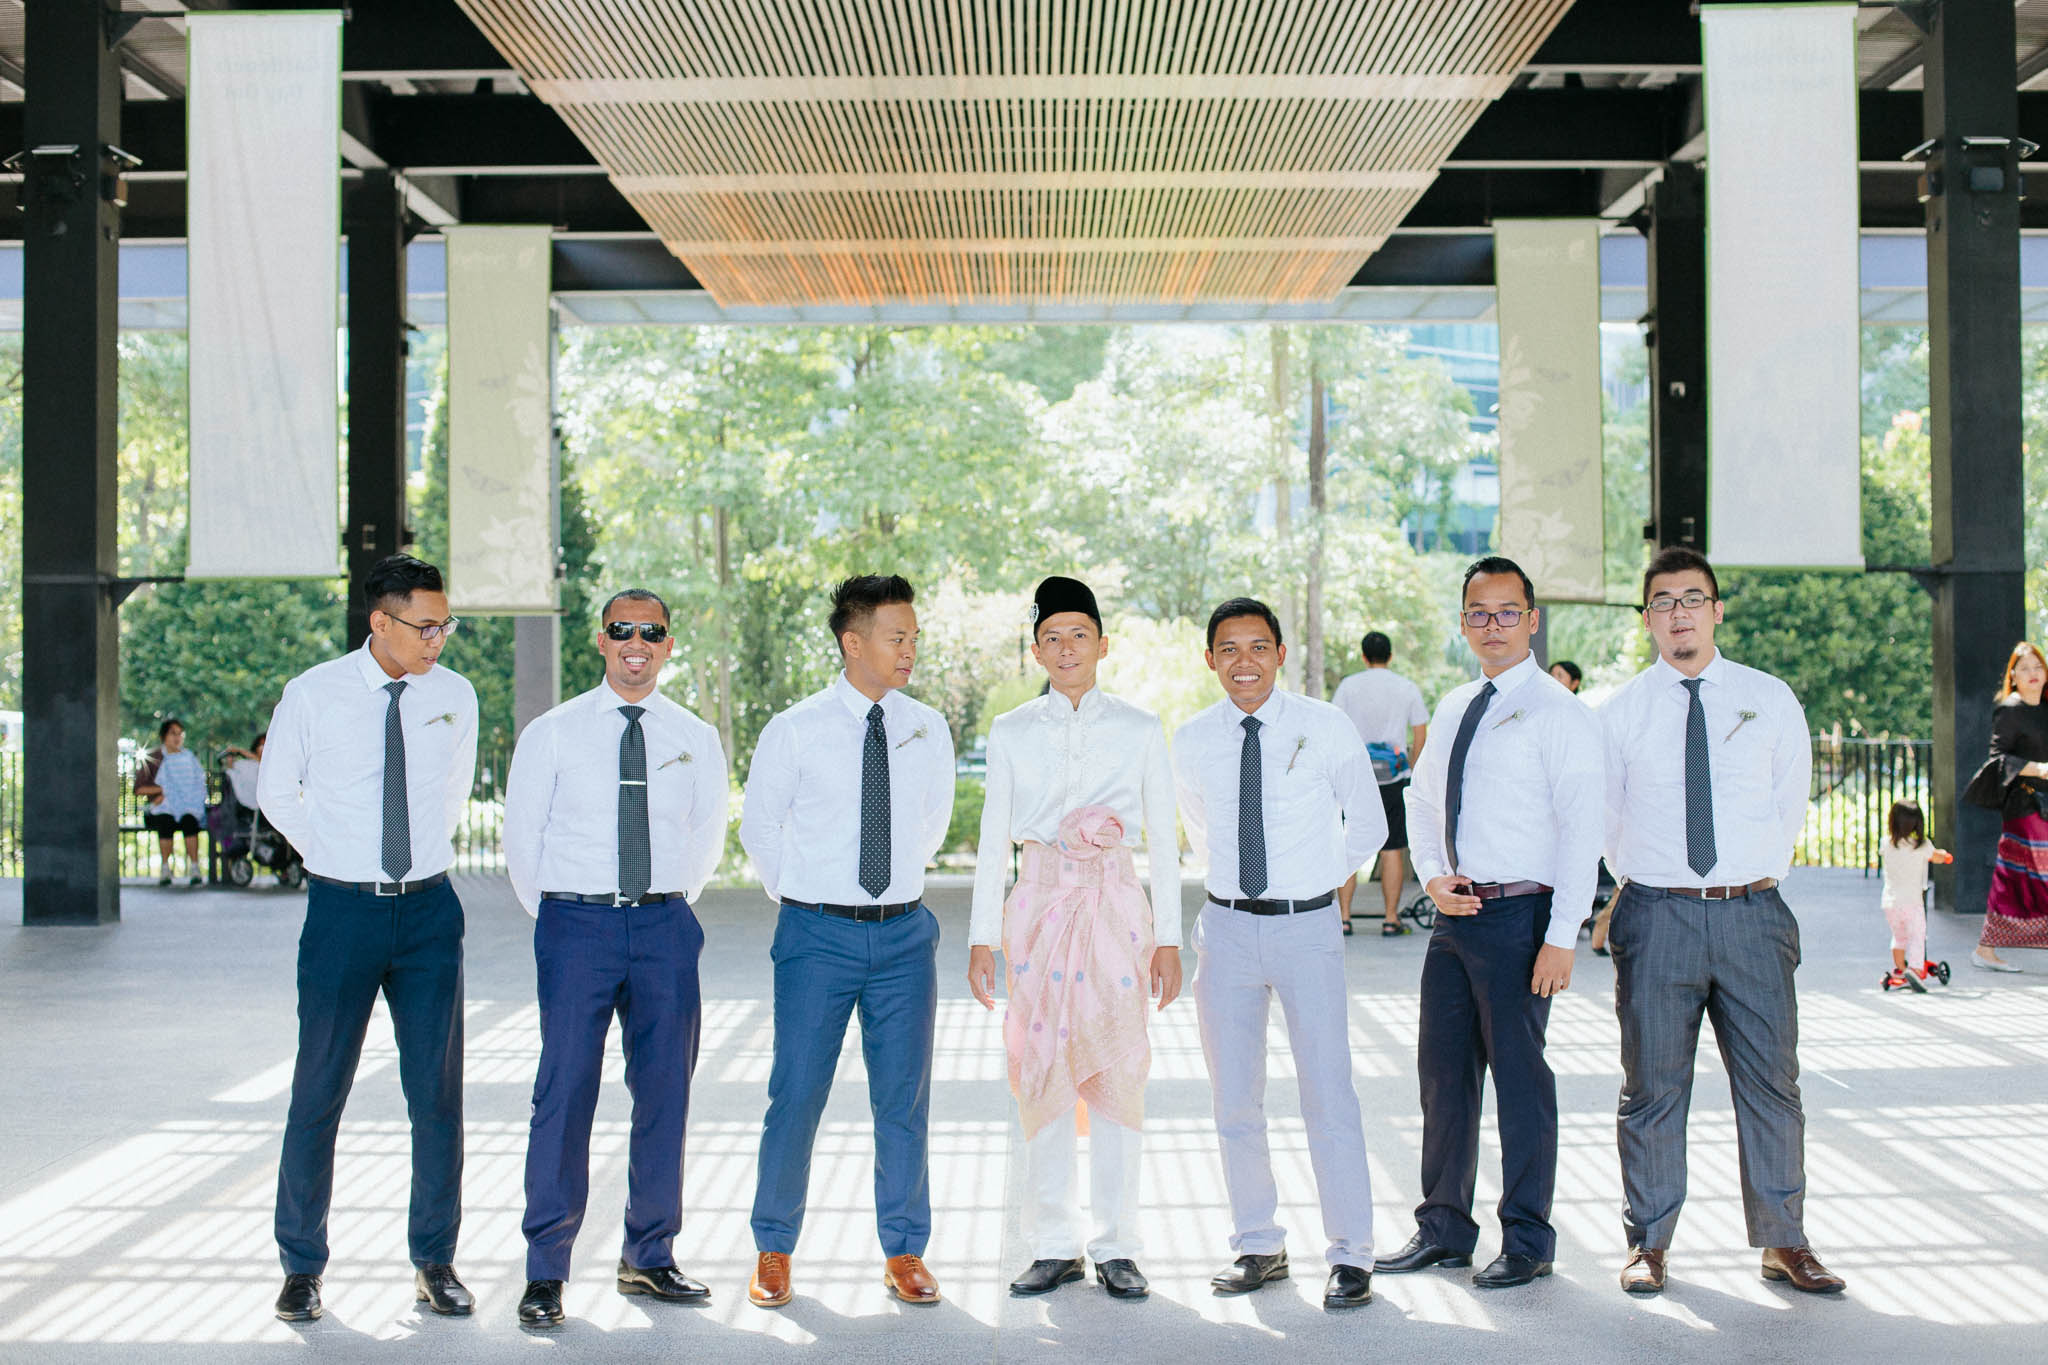 singapore-wedding-photographer-wedding-halimah-muhsin-007.jpg